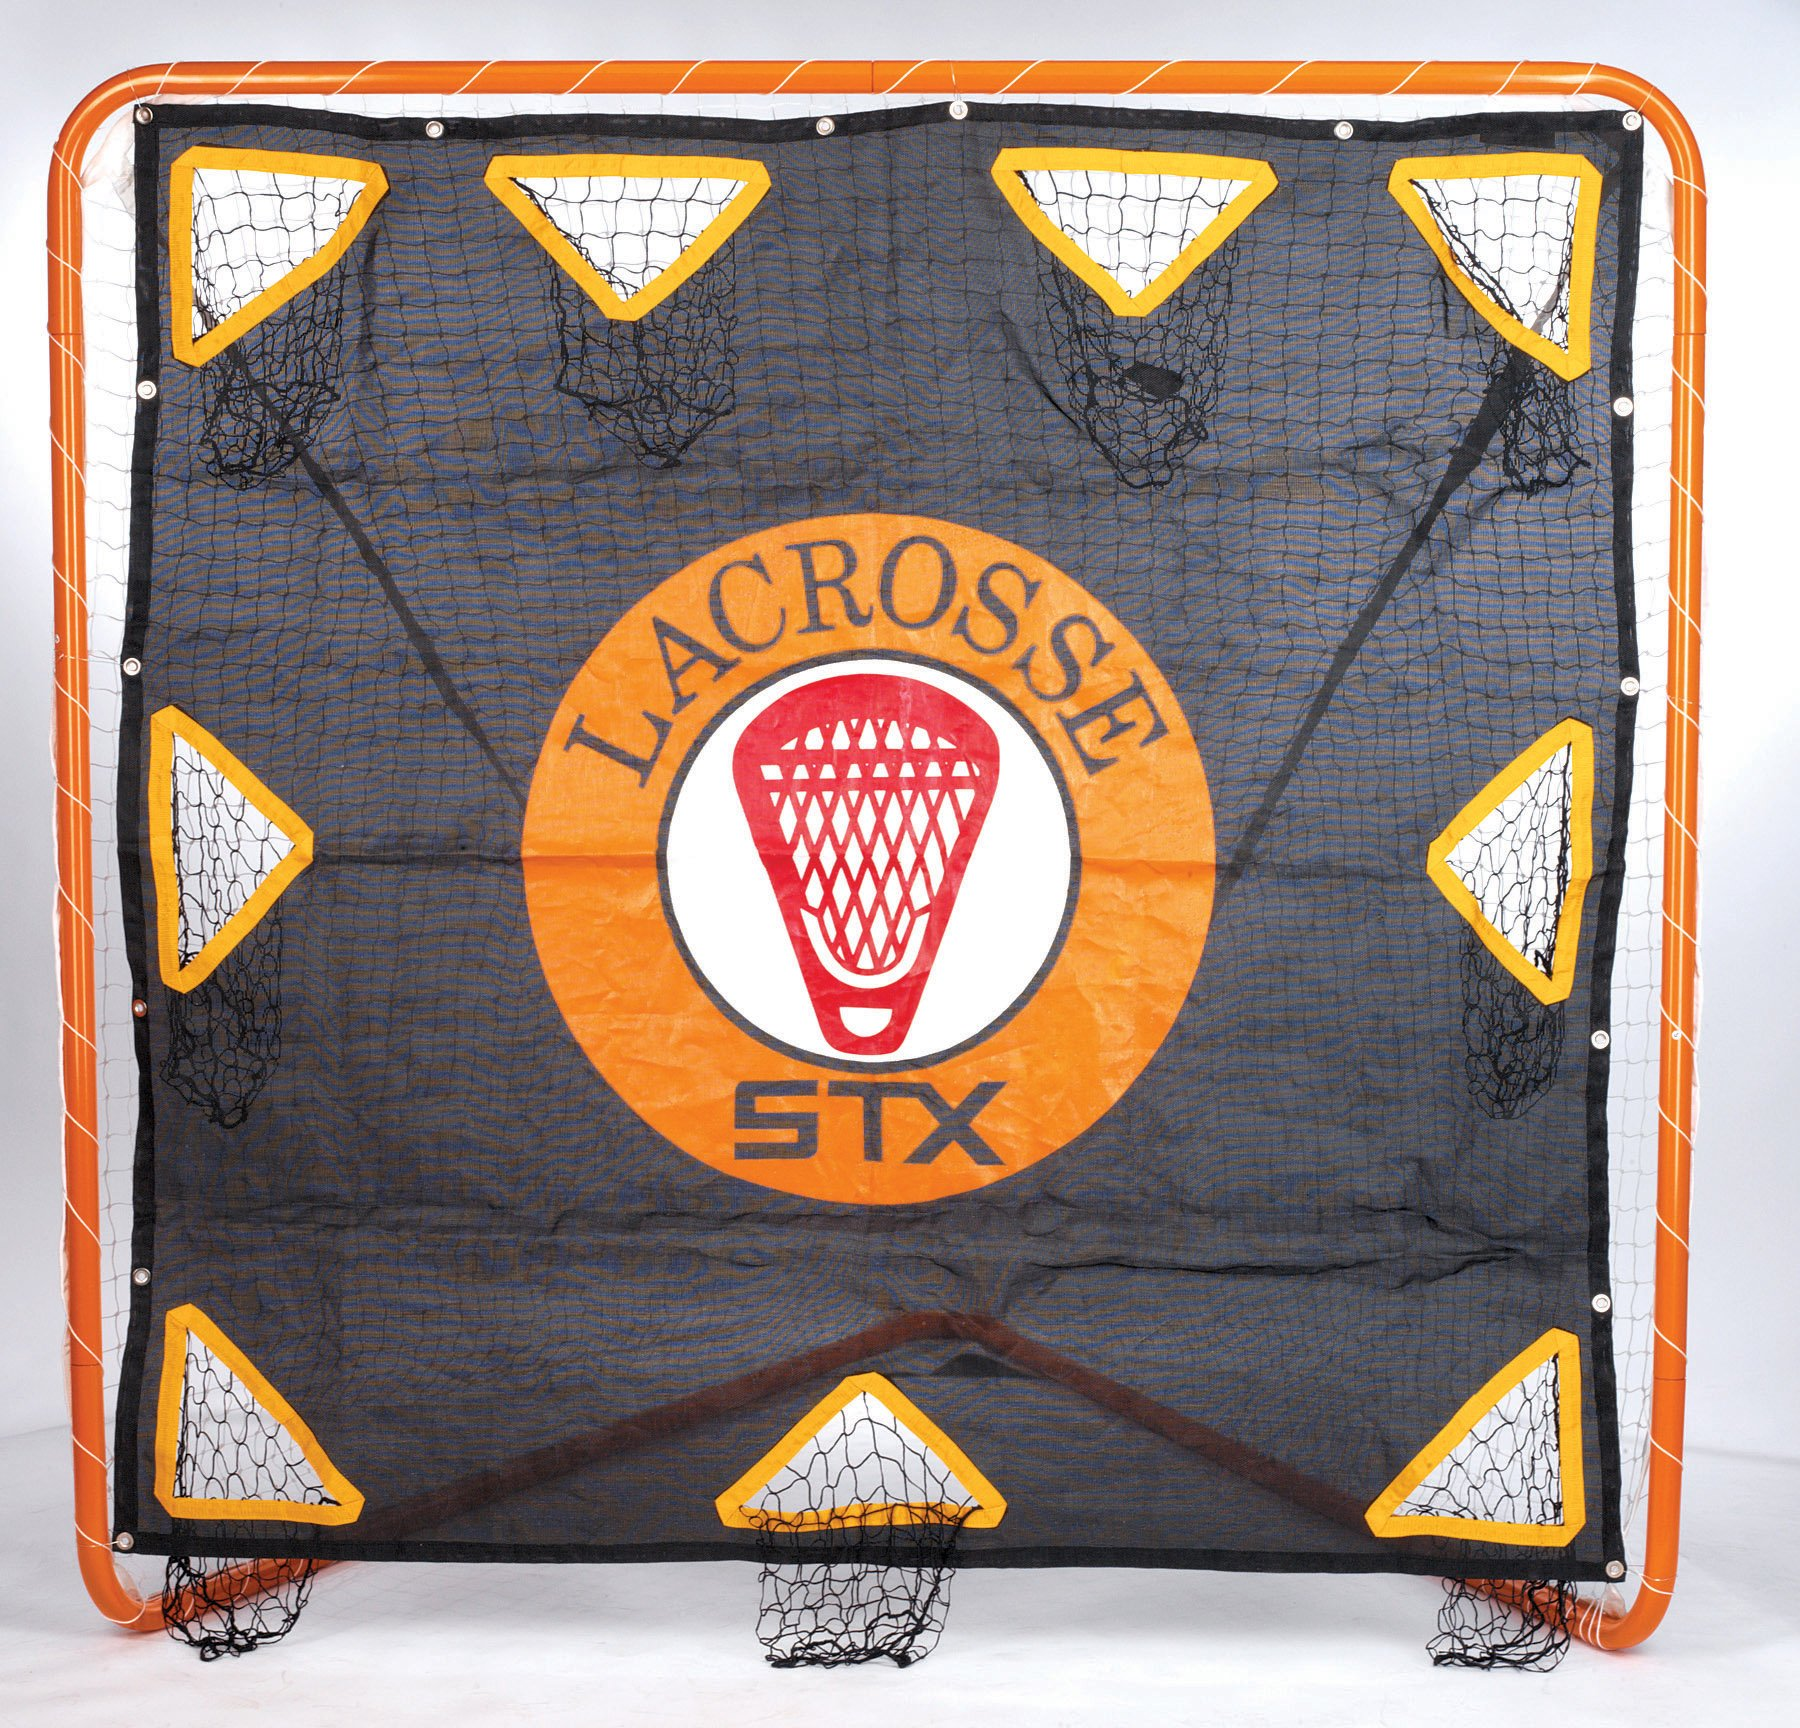 STX Advanced Goal Target with Advanced Hole Design